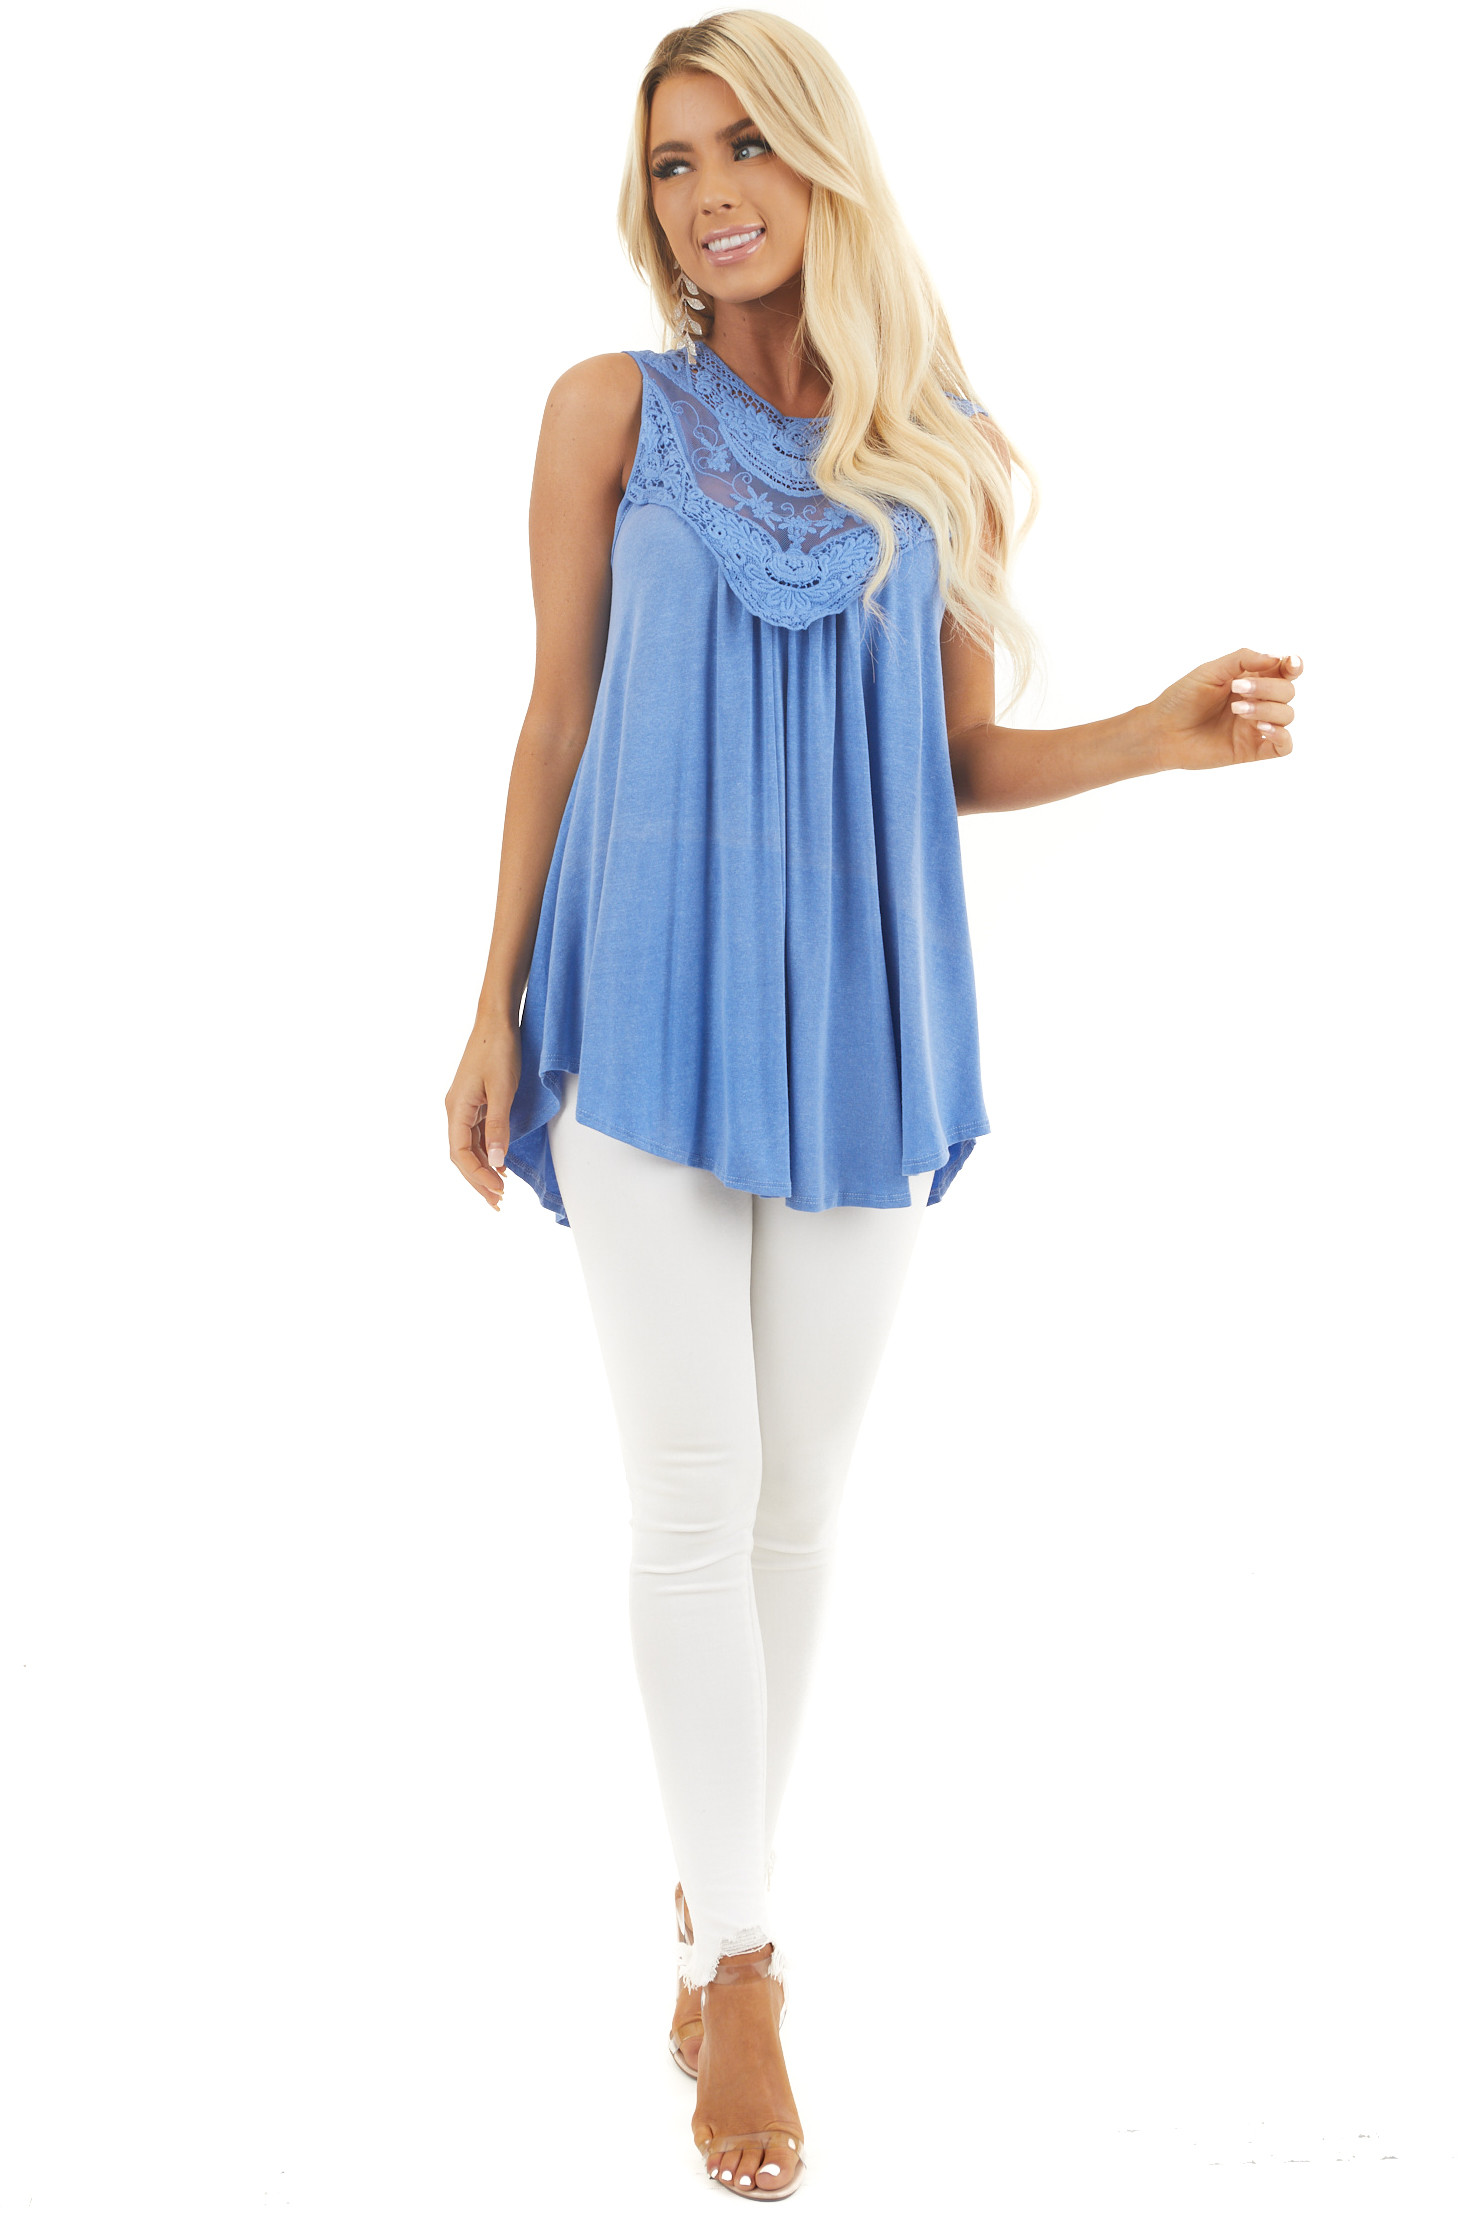 Vintage Blue Flowy Sleeveless Top with Sheer Crochet Details